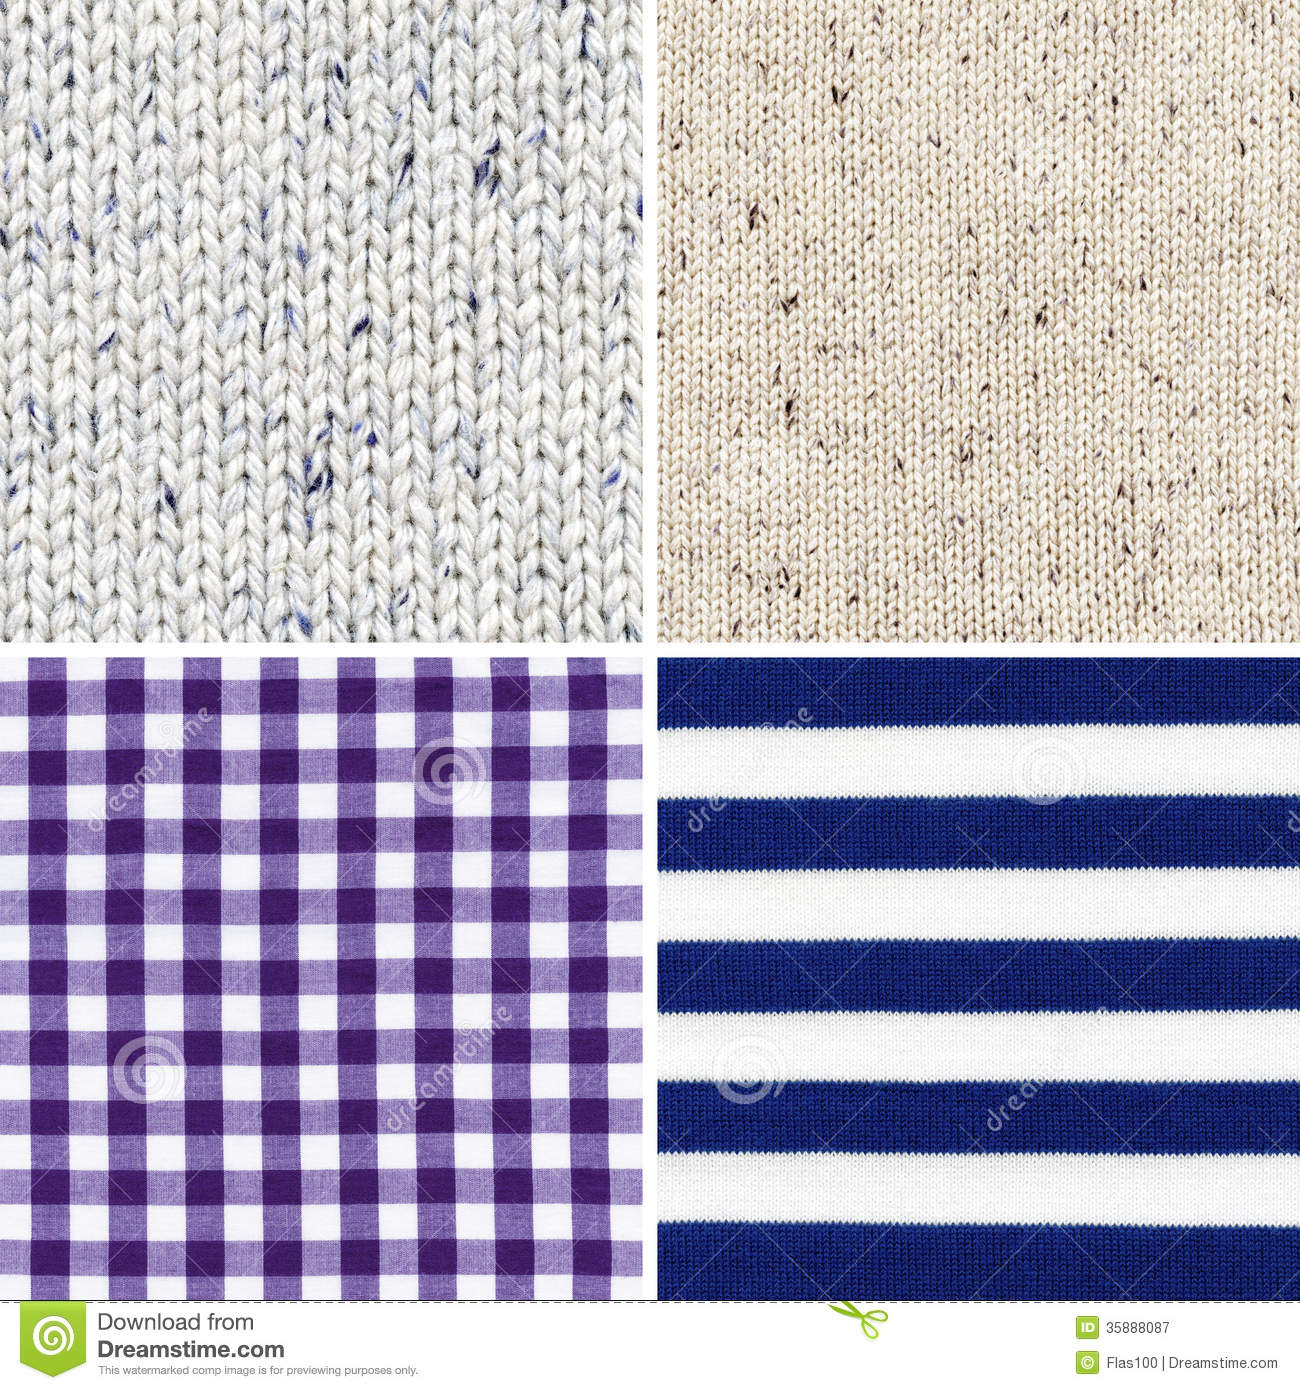 Different Woven Fabric Texture Royalty Free Stock